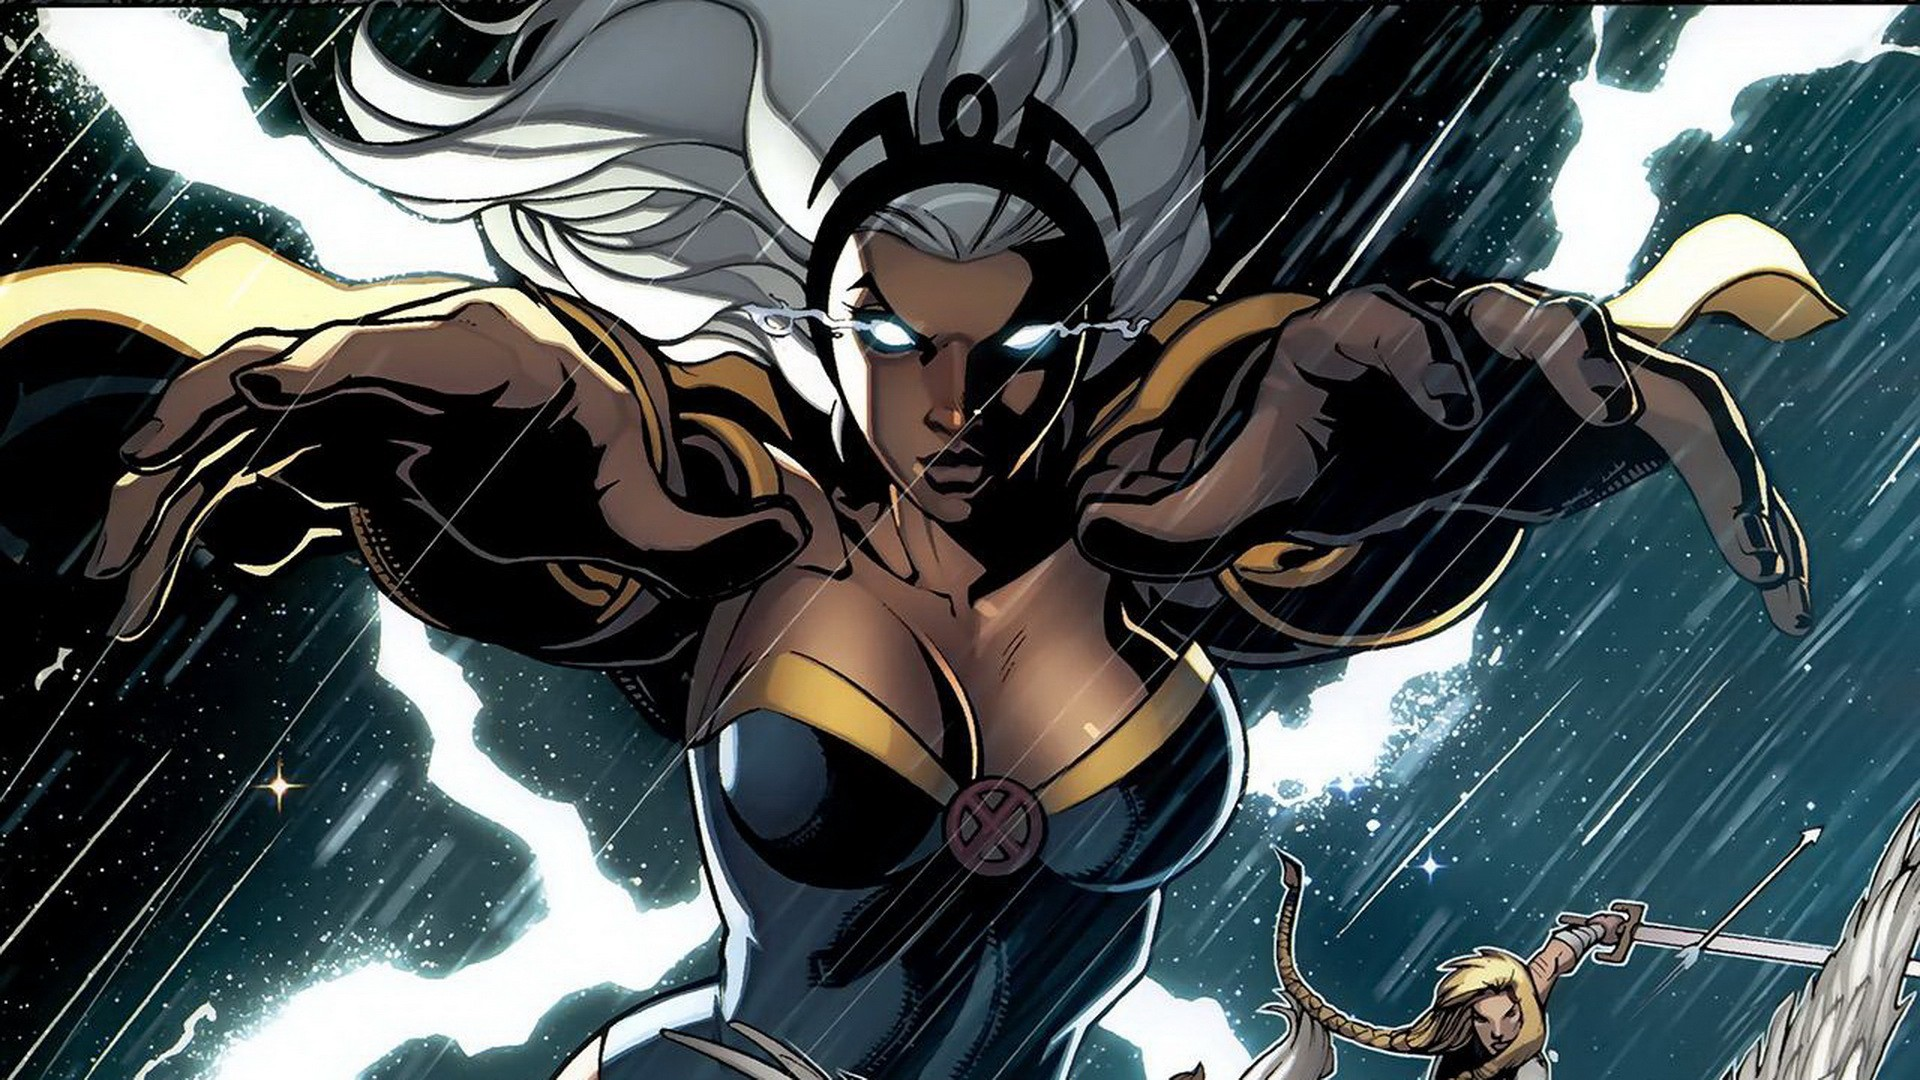 Storm-Ororo-Munroe-wallpapers-x-men-31690257-1920-1080